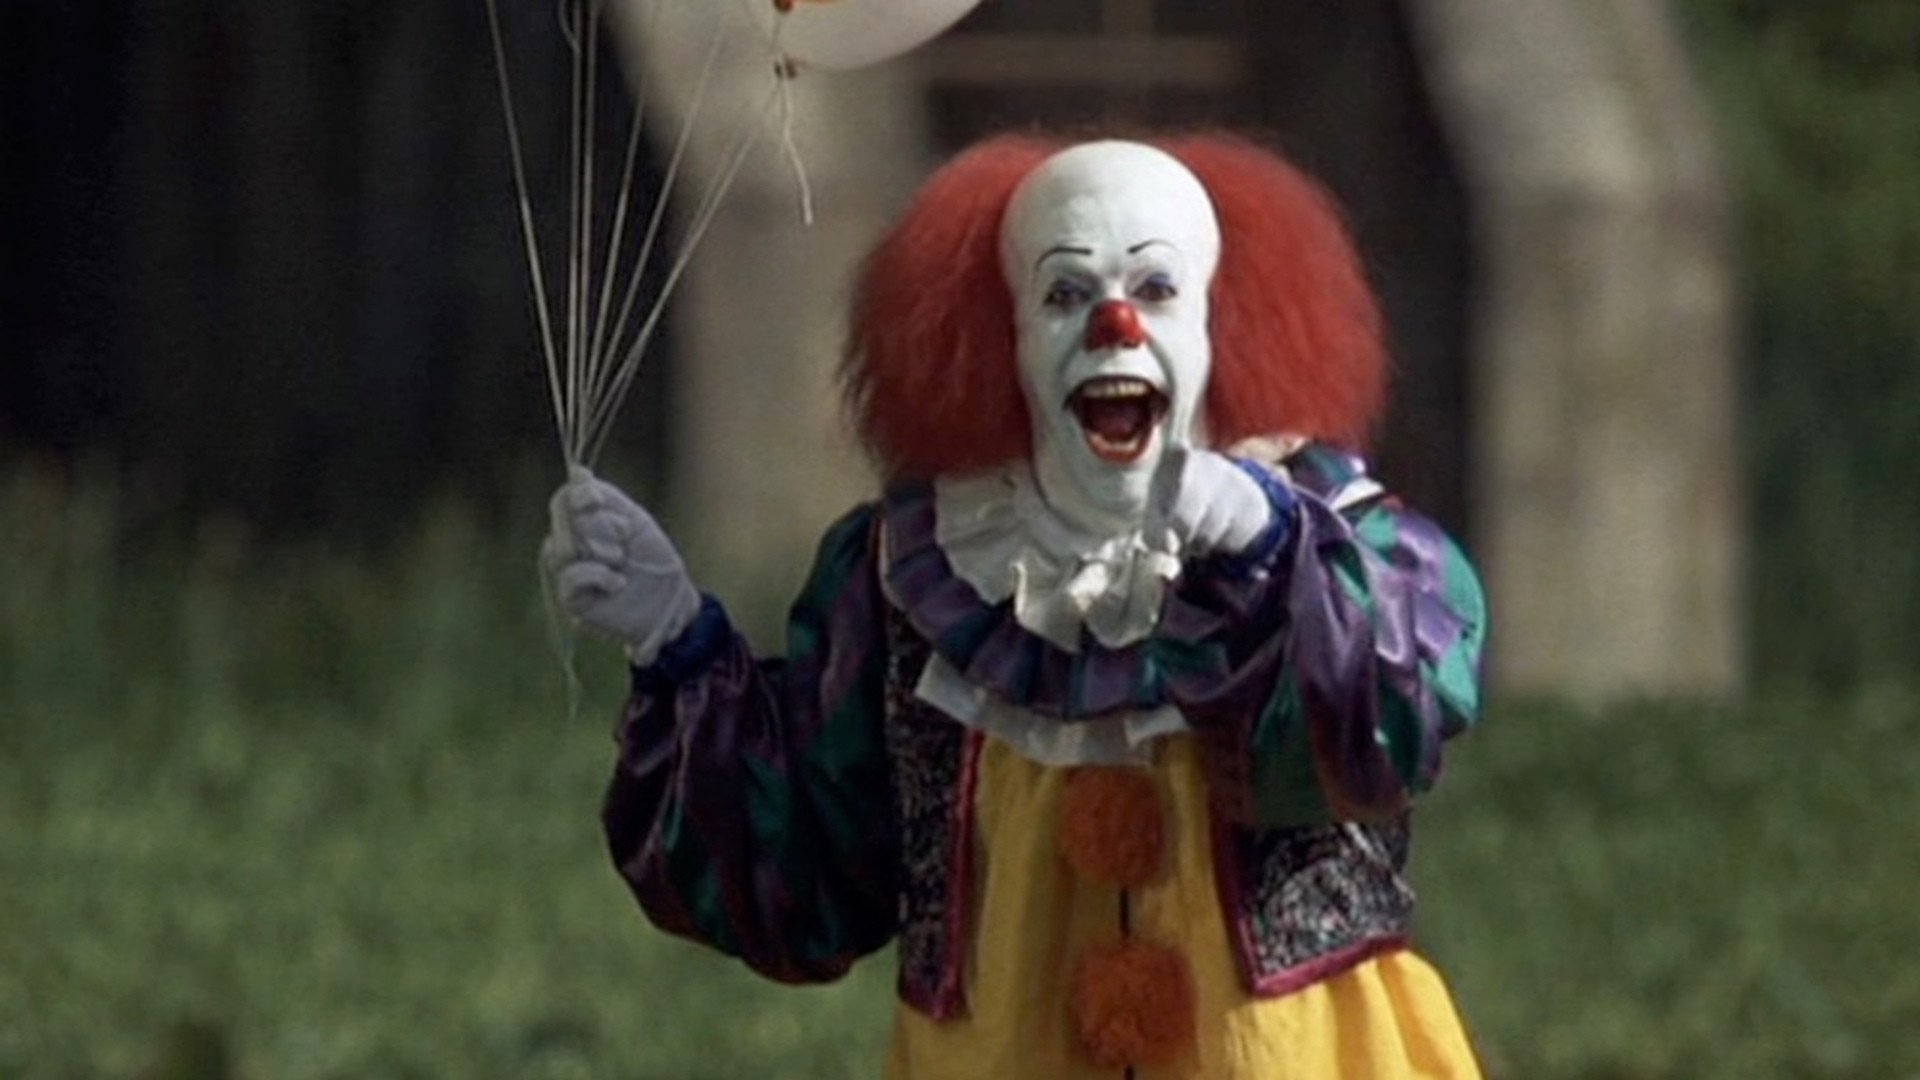 Title Pennywise The Clown Wallpaper 22 Get Hd Wallpapers Free Dimension 1920 X 1080 File Type JPG JPEG